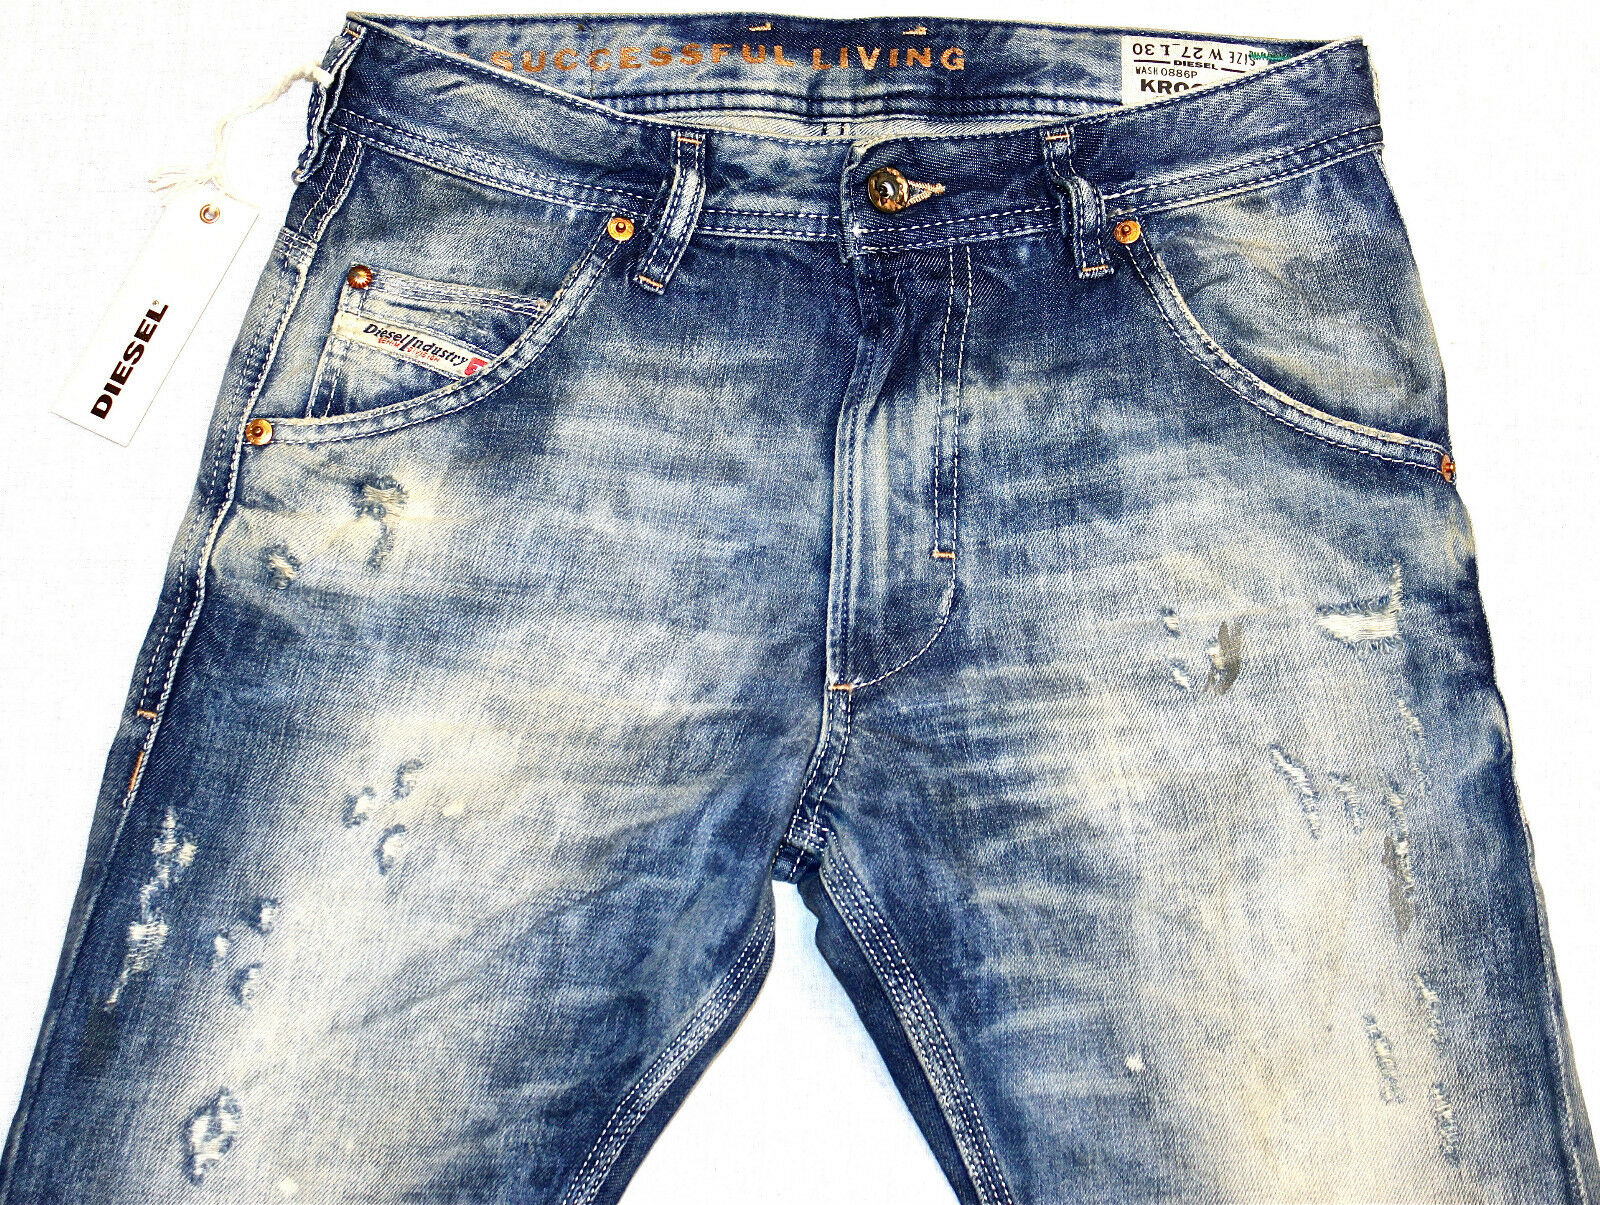 BRAND NEW DIESEL KROOLEY 886P JEANS 27X30 CARROT FIT TAPErot LEG 0886P